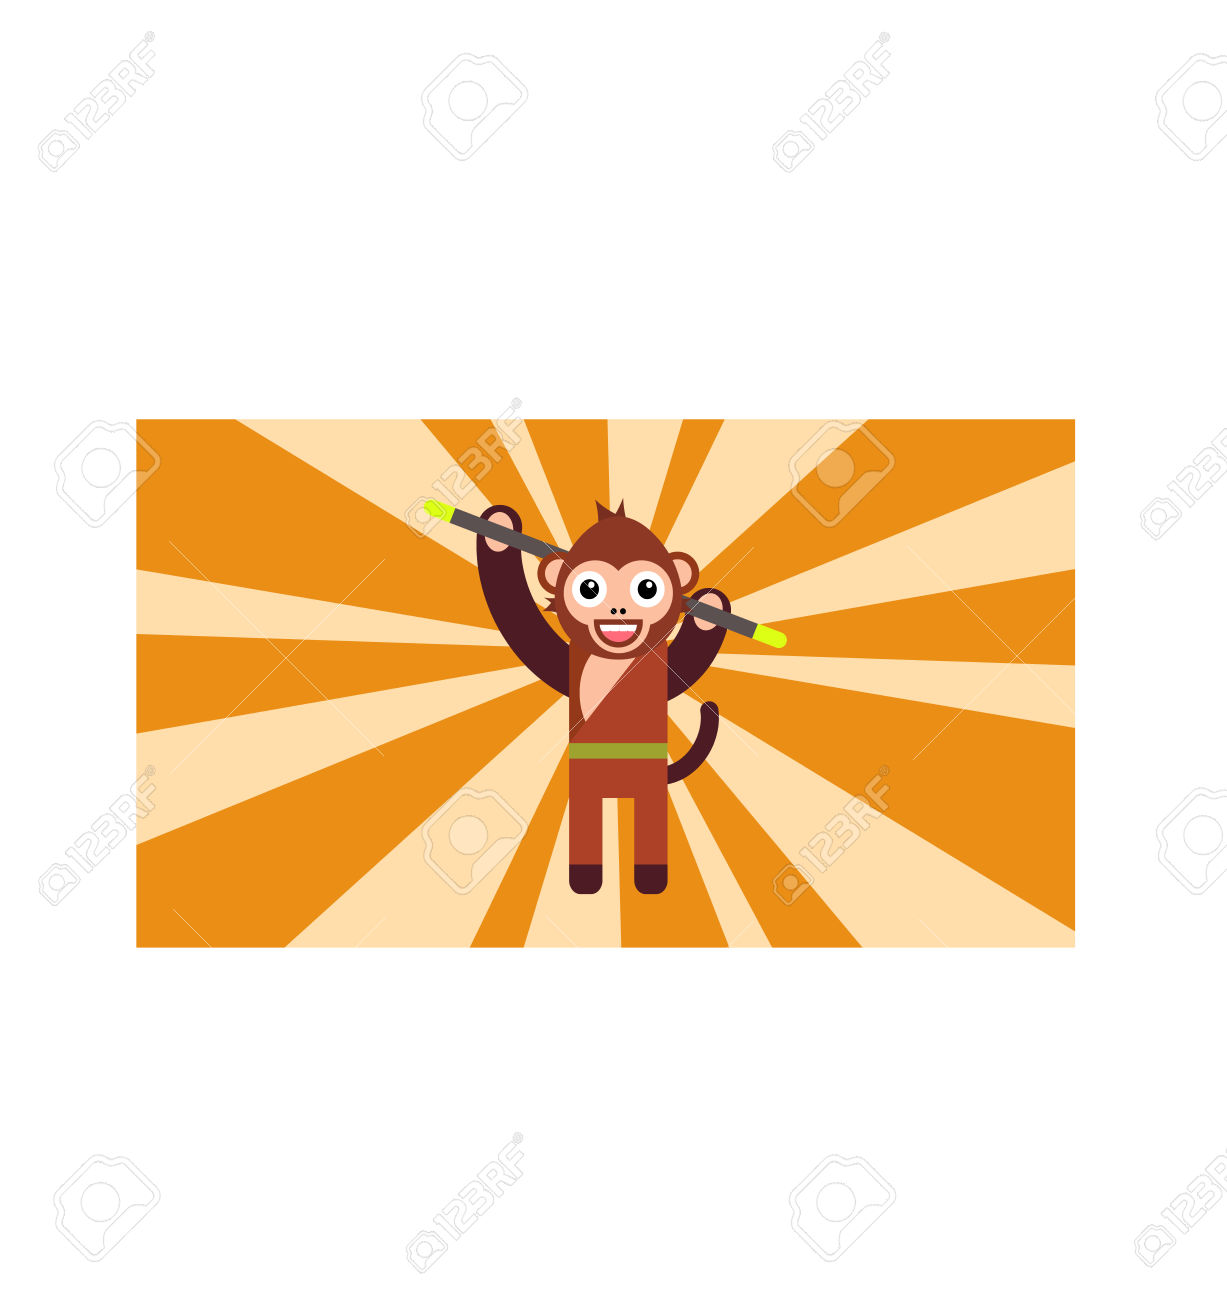 The Year Of Monkey, Monkey Turn, Monkey Holding Magic Stick.